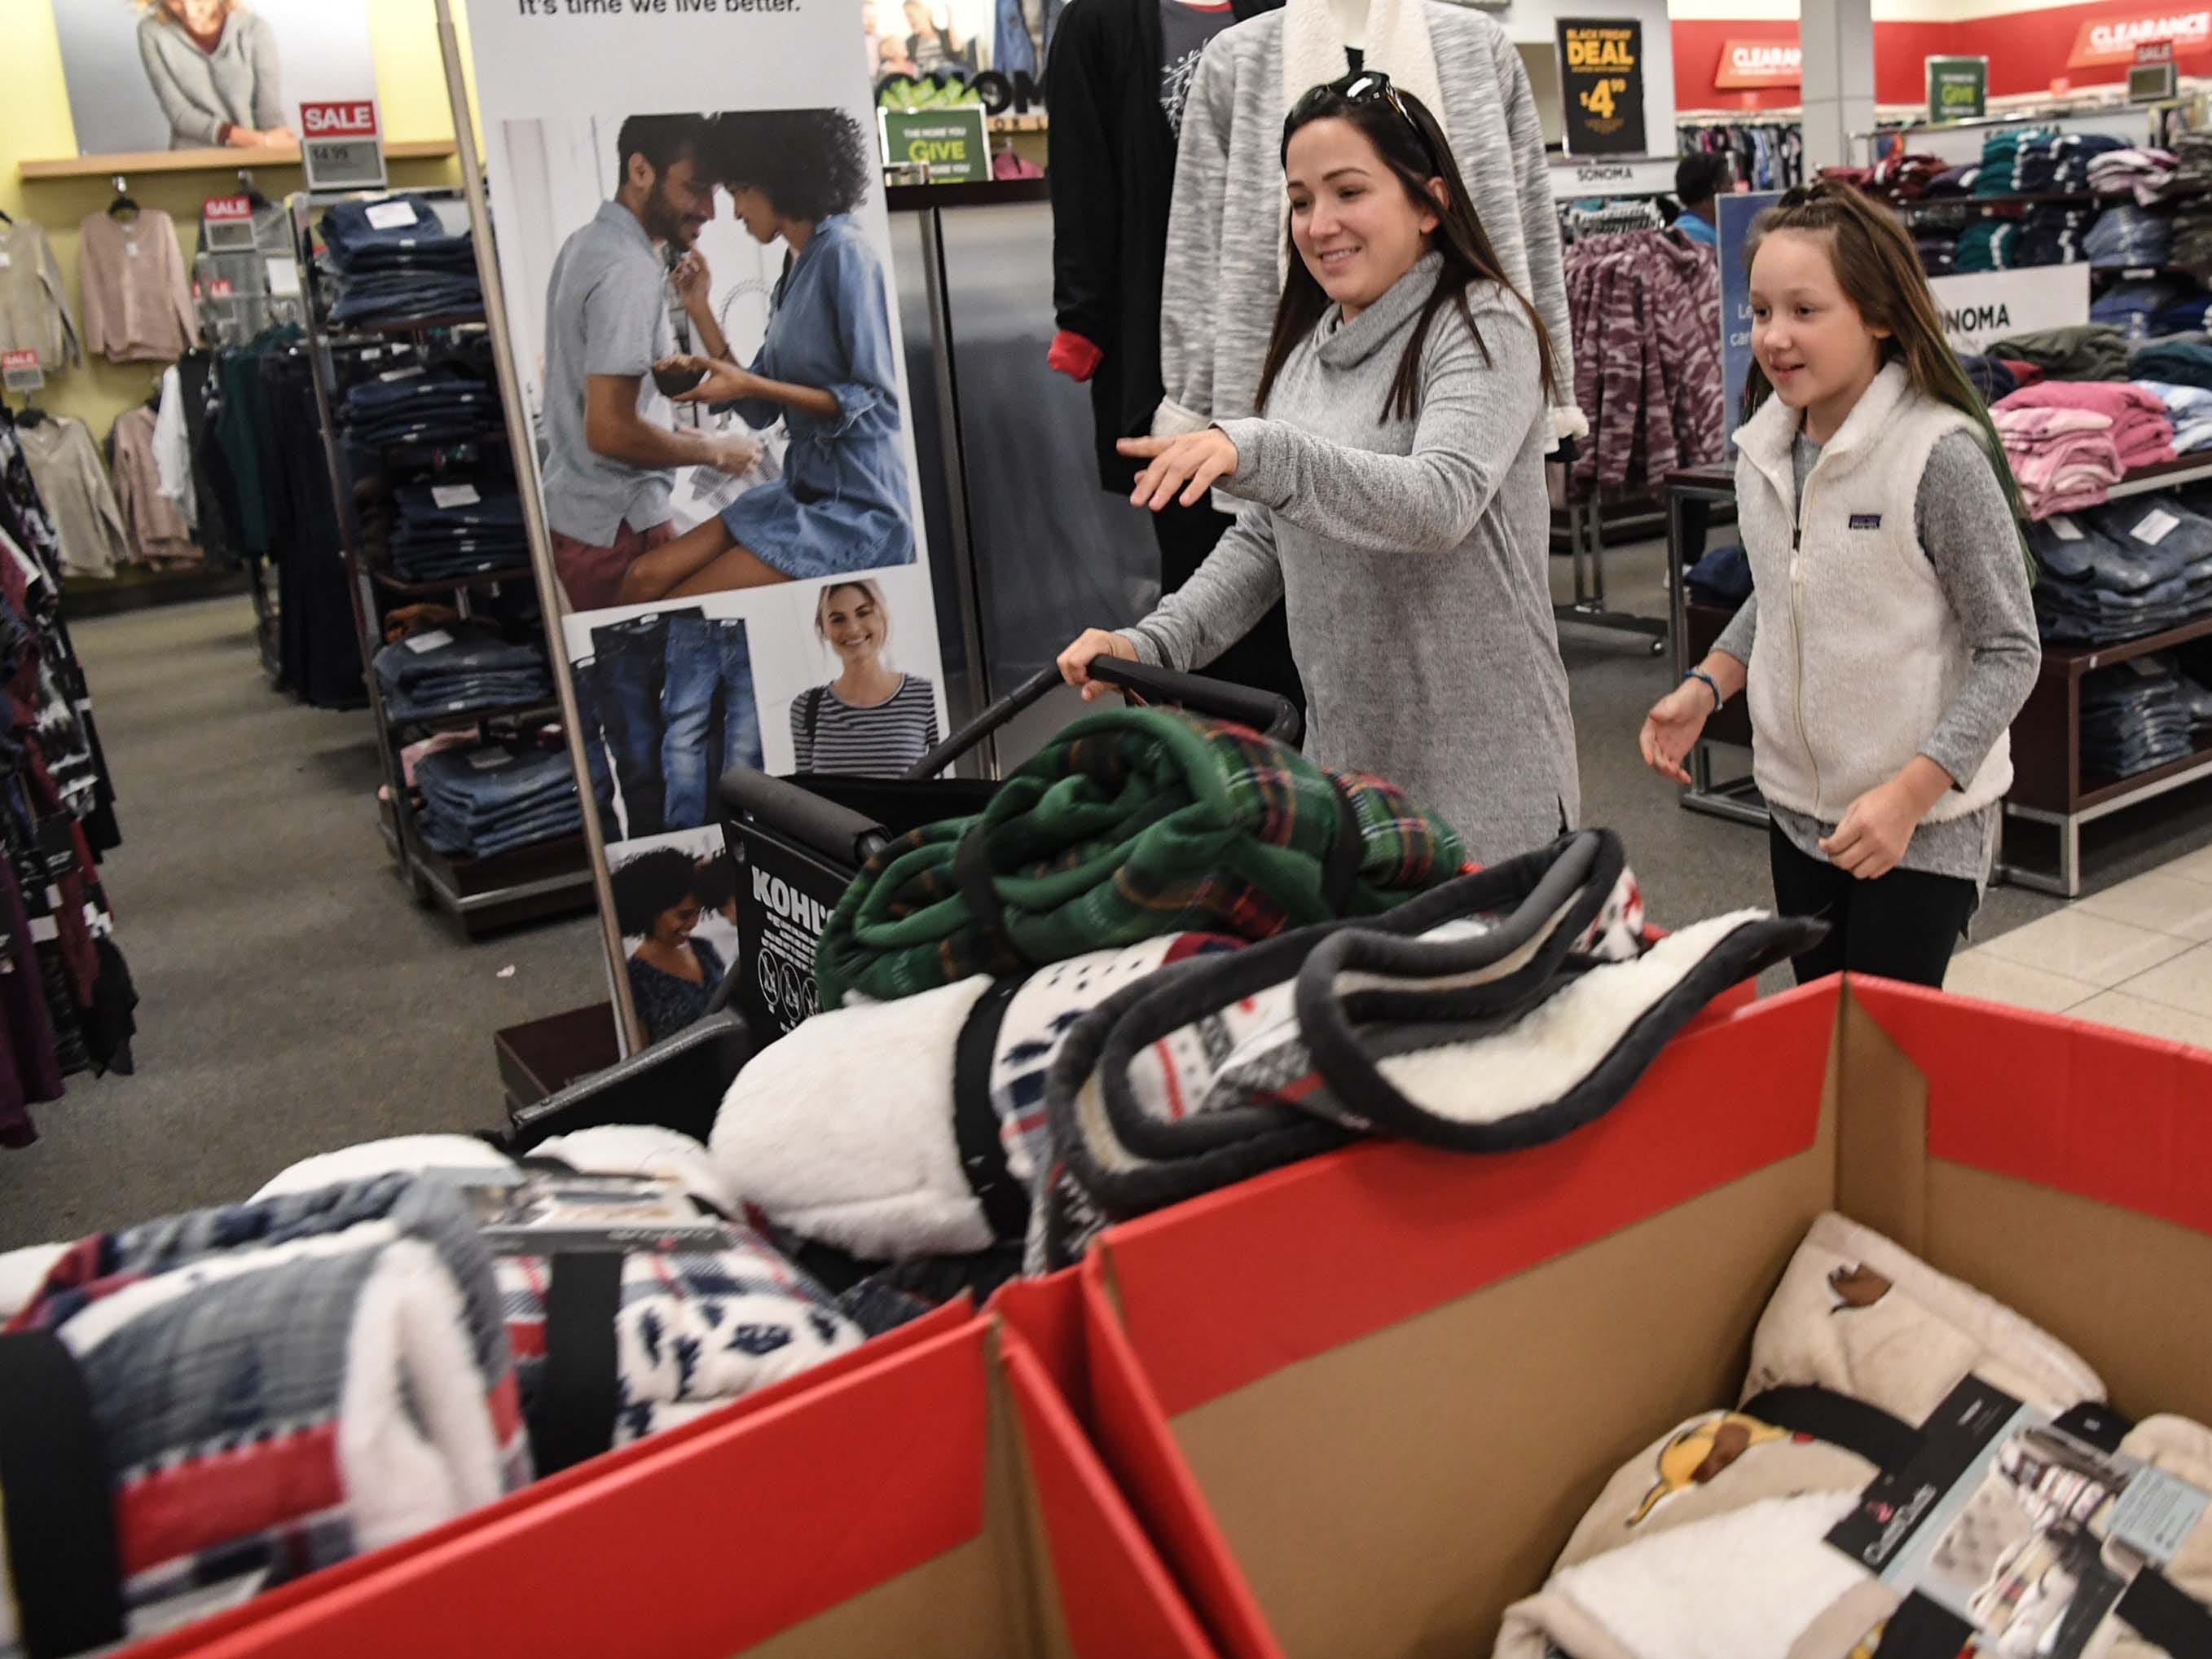 Victoria Bonnette, left, and her daughter Lilah Bonette, first in line, move quickly through isles during Black Friday sales at Kohl's in Anderson on Thanksgiving Day, Thursday, November 22, 2018.